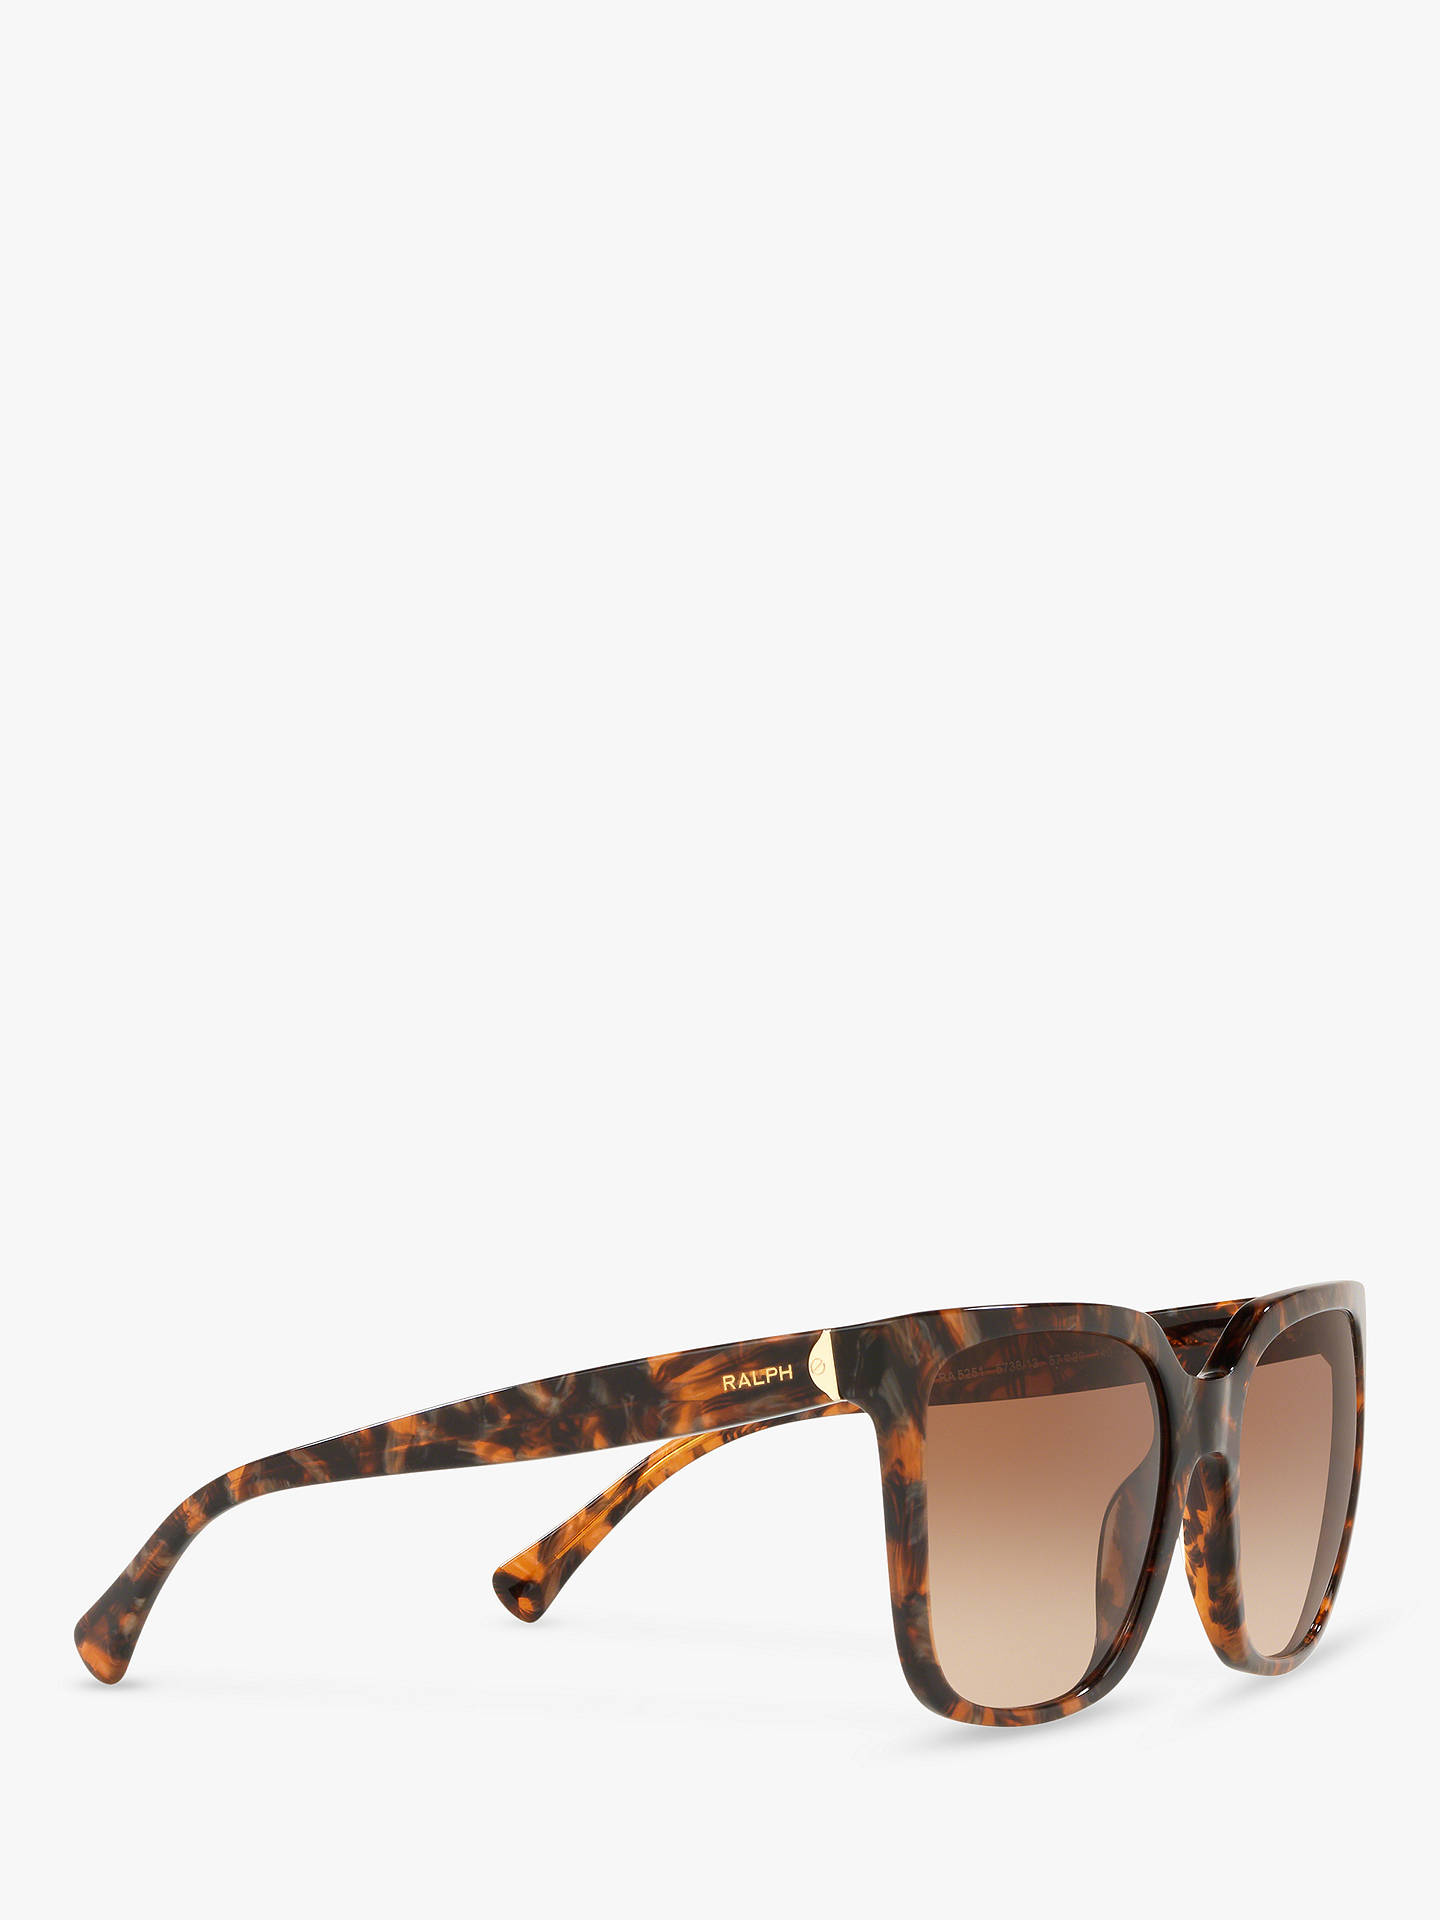 Marblebrown Polo Lauren Ralph Ra5251 SunglassesBrown Women's Square QrxCoEdeBW